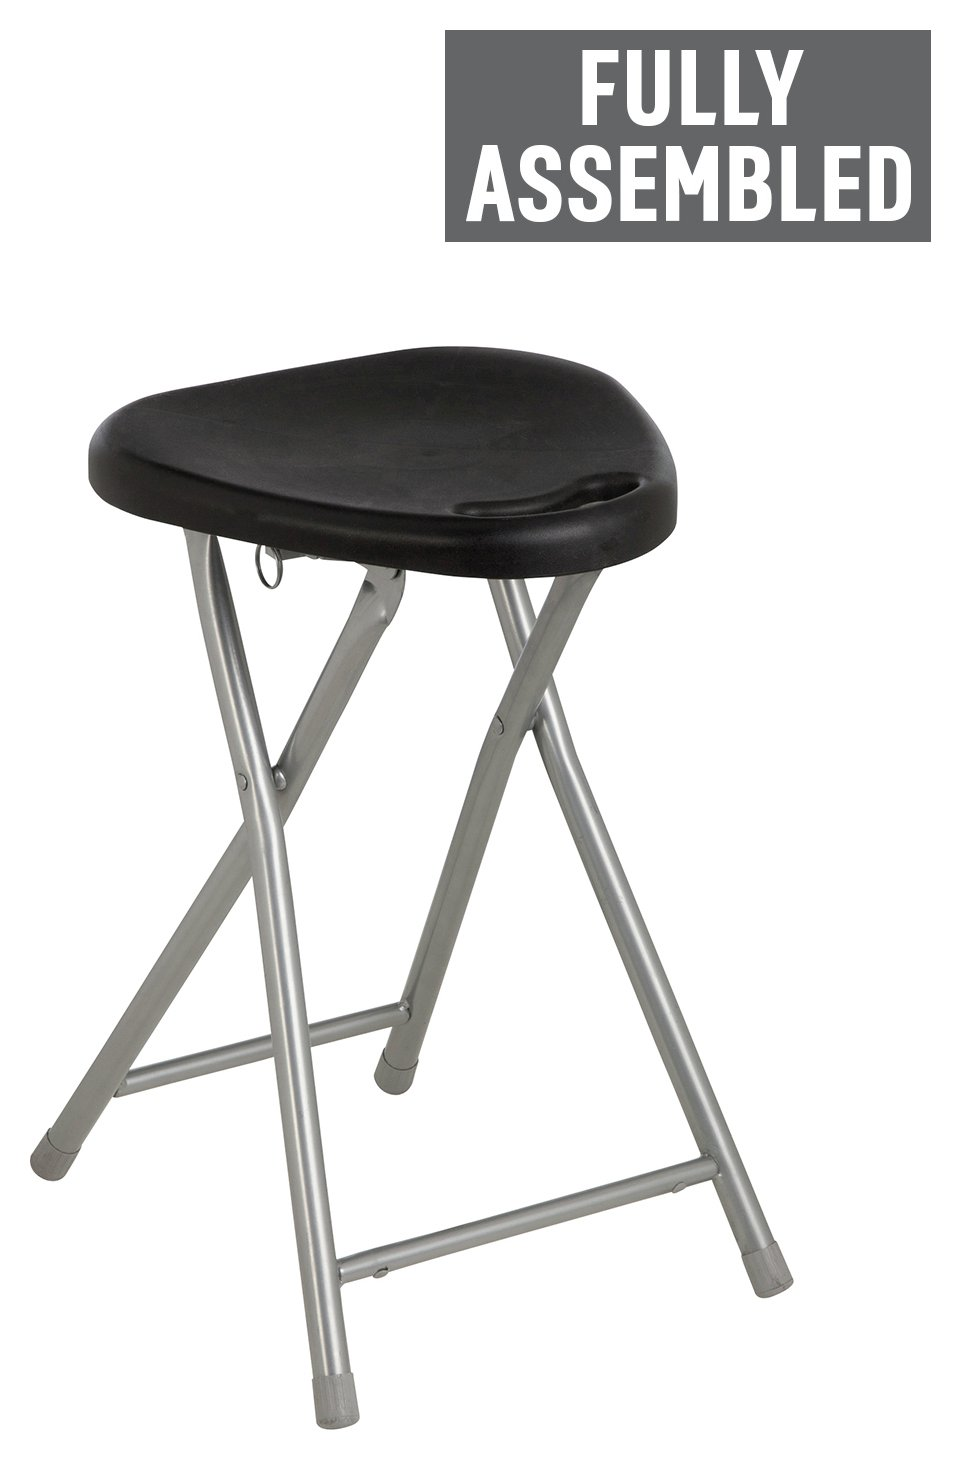 Buy Simple Value Folding Single Stool Black at Argosco  : 6003575RZ001AWebampw570amph513 from www.argos.co.uk size 570 x 513 jpeg 17kB